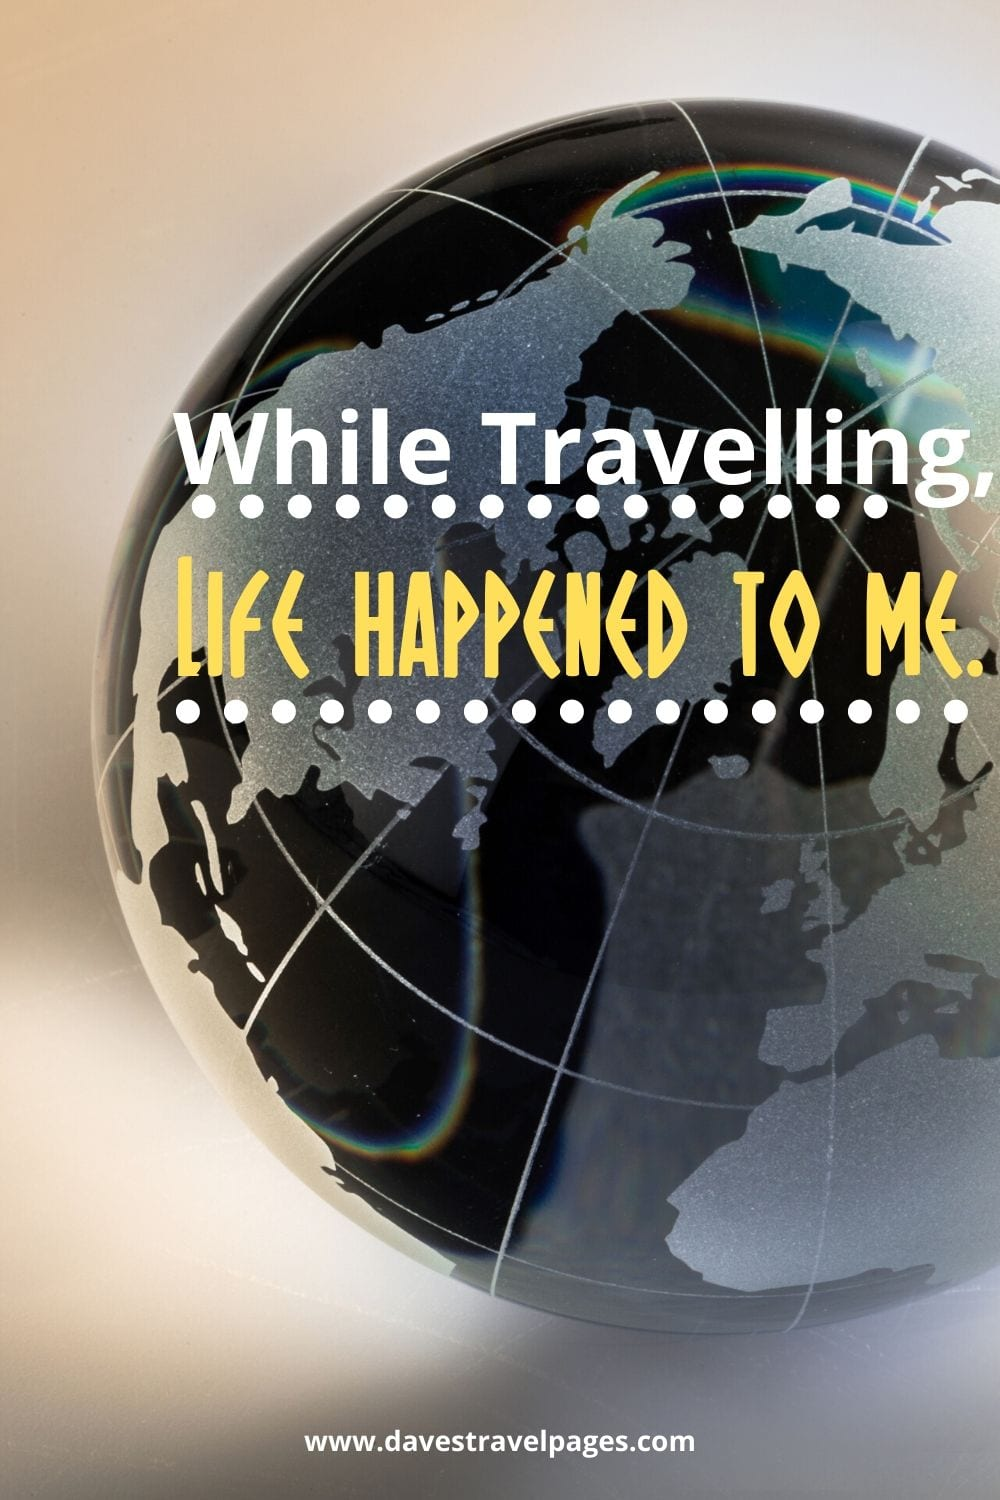 Travel and Life Quotes: While Travelling, Life happened to me.